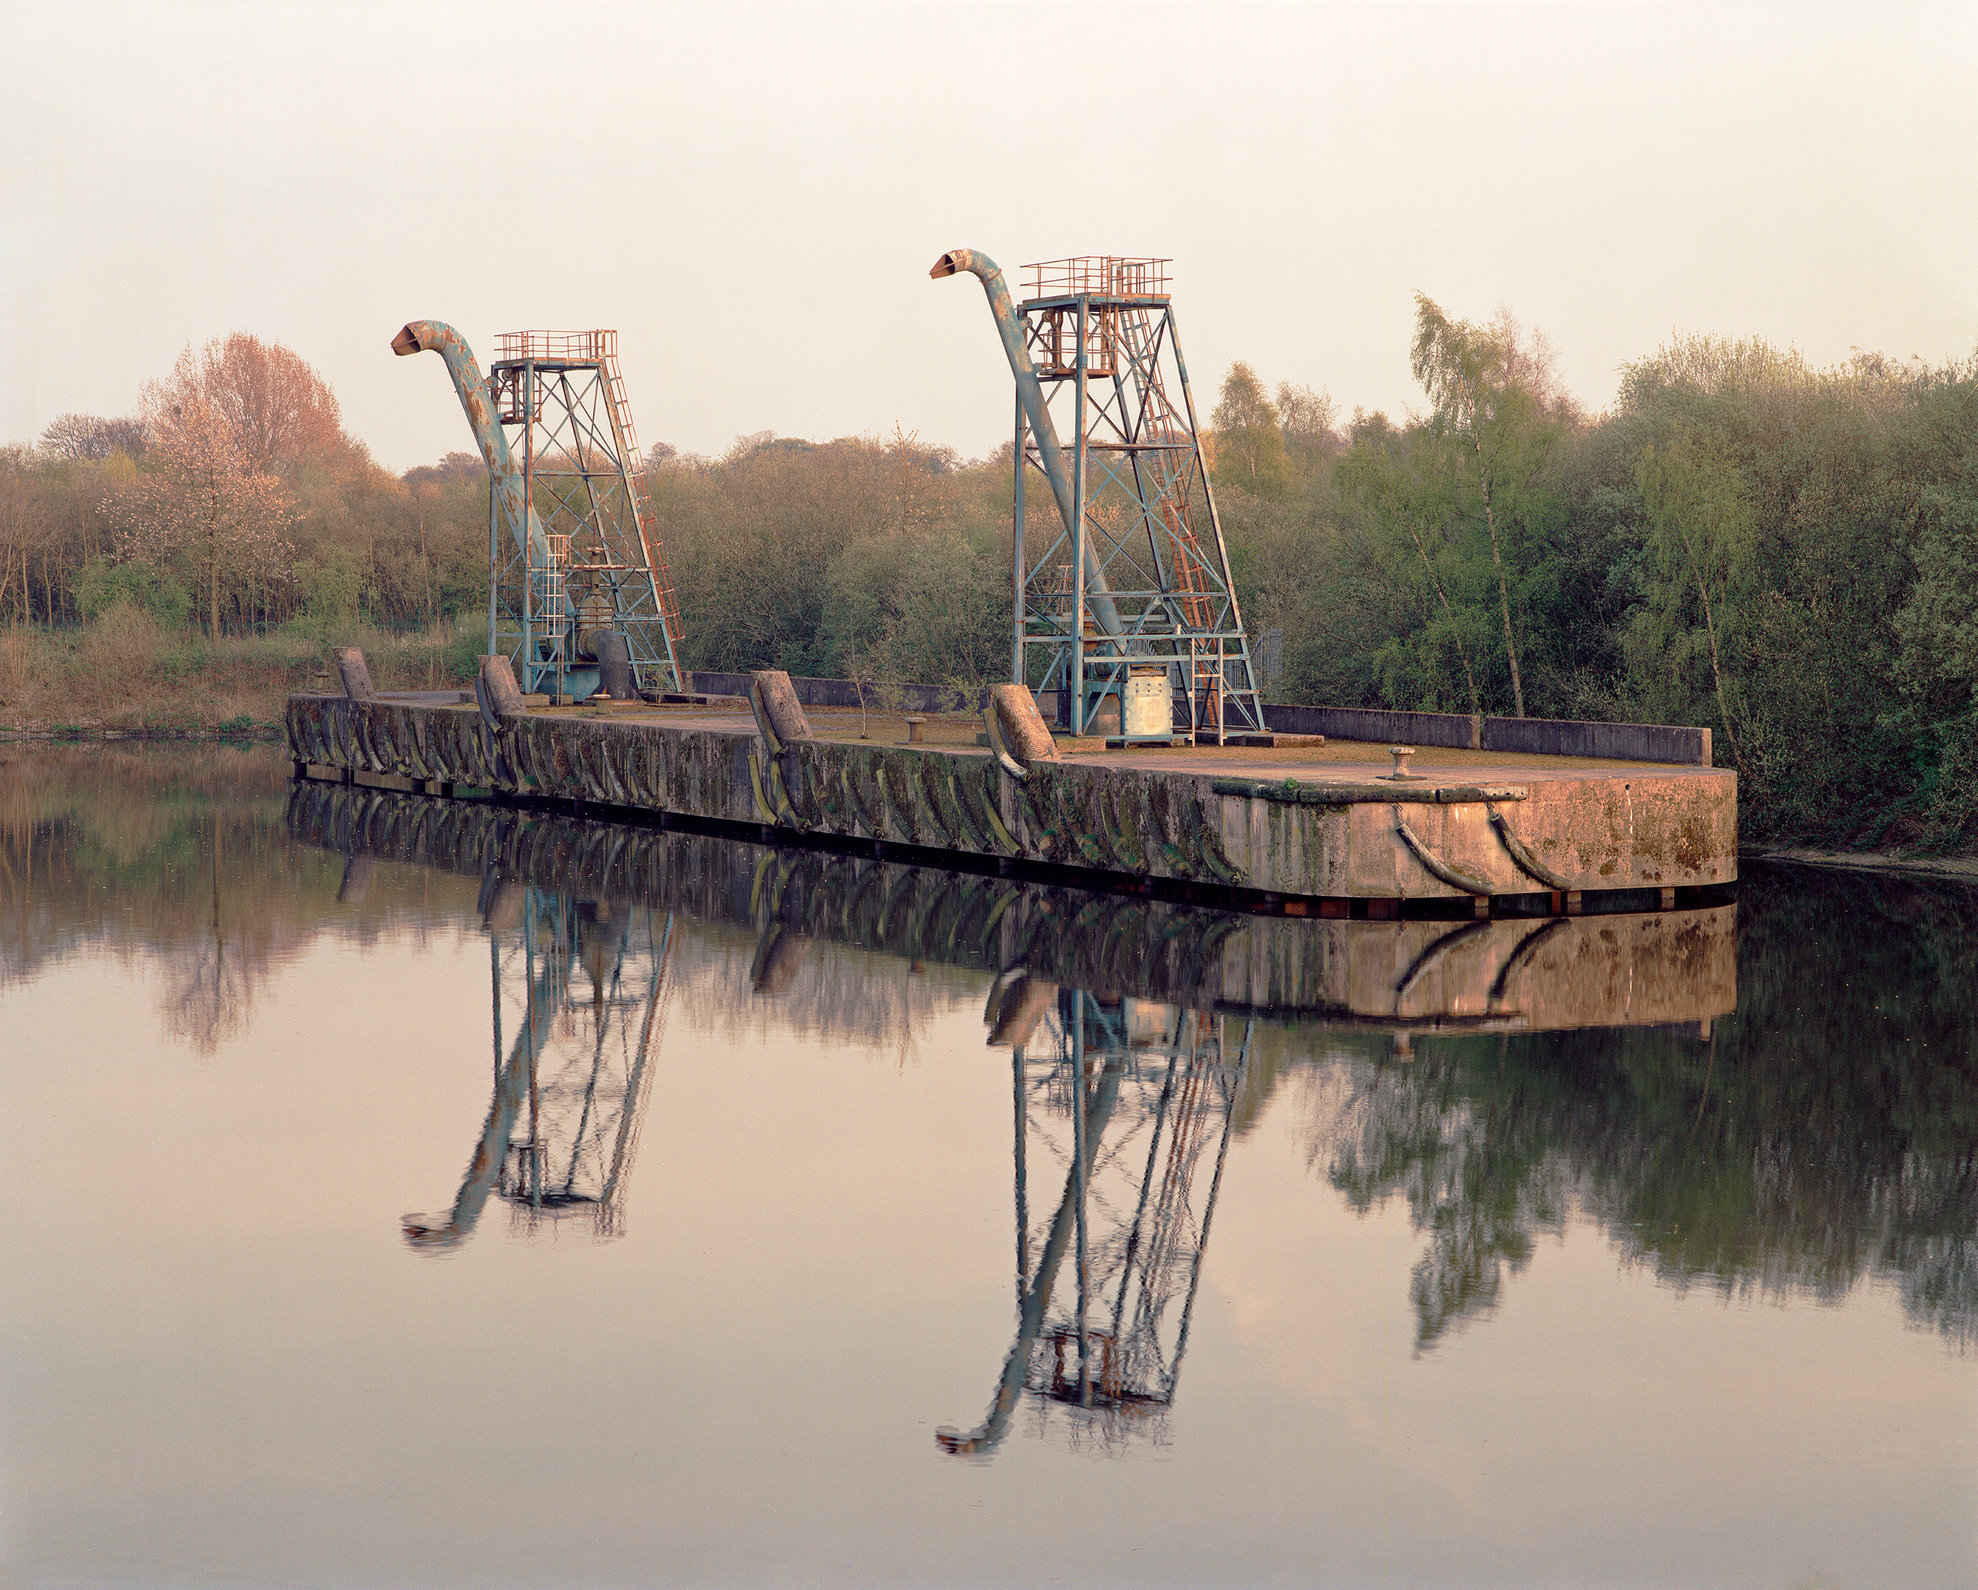 Sewage Hoppers, Manchester Shipping Canal